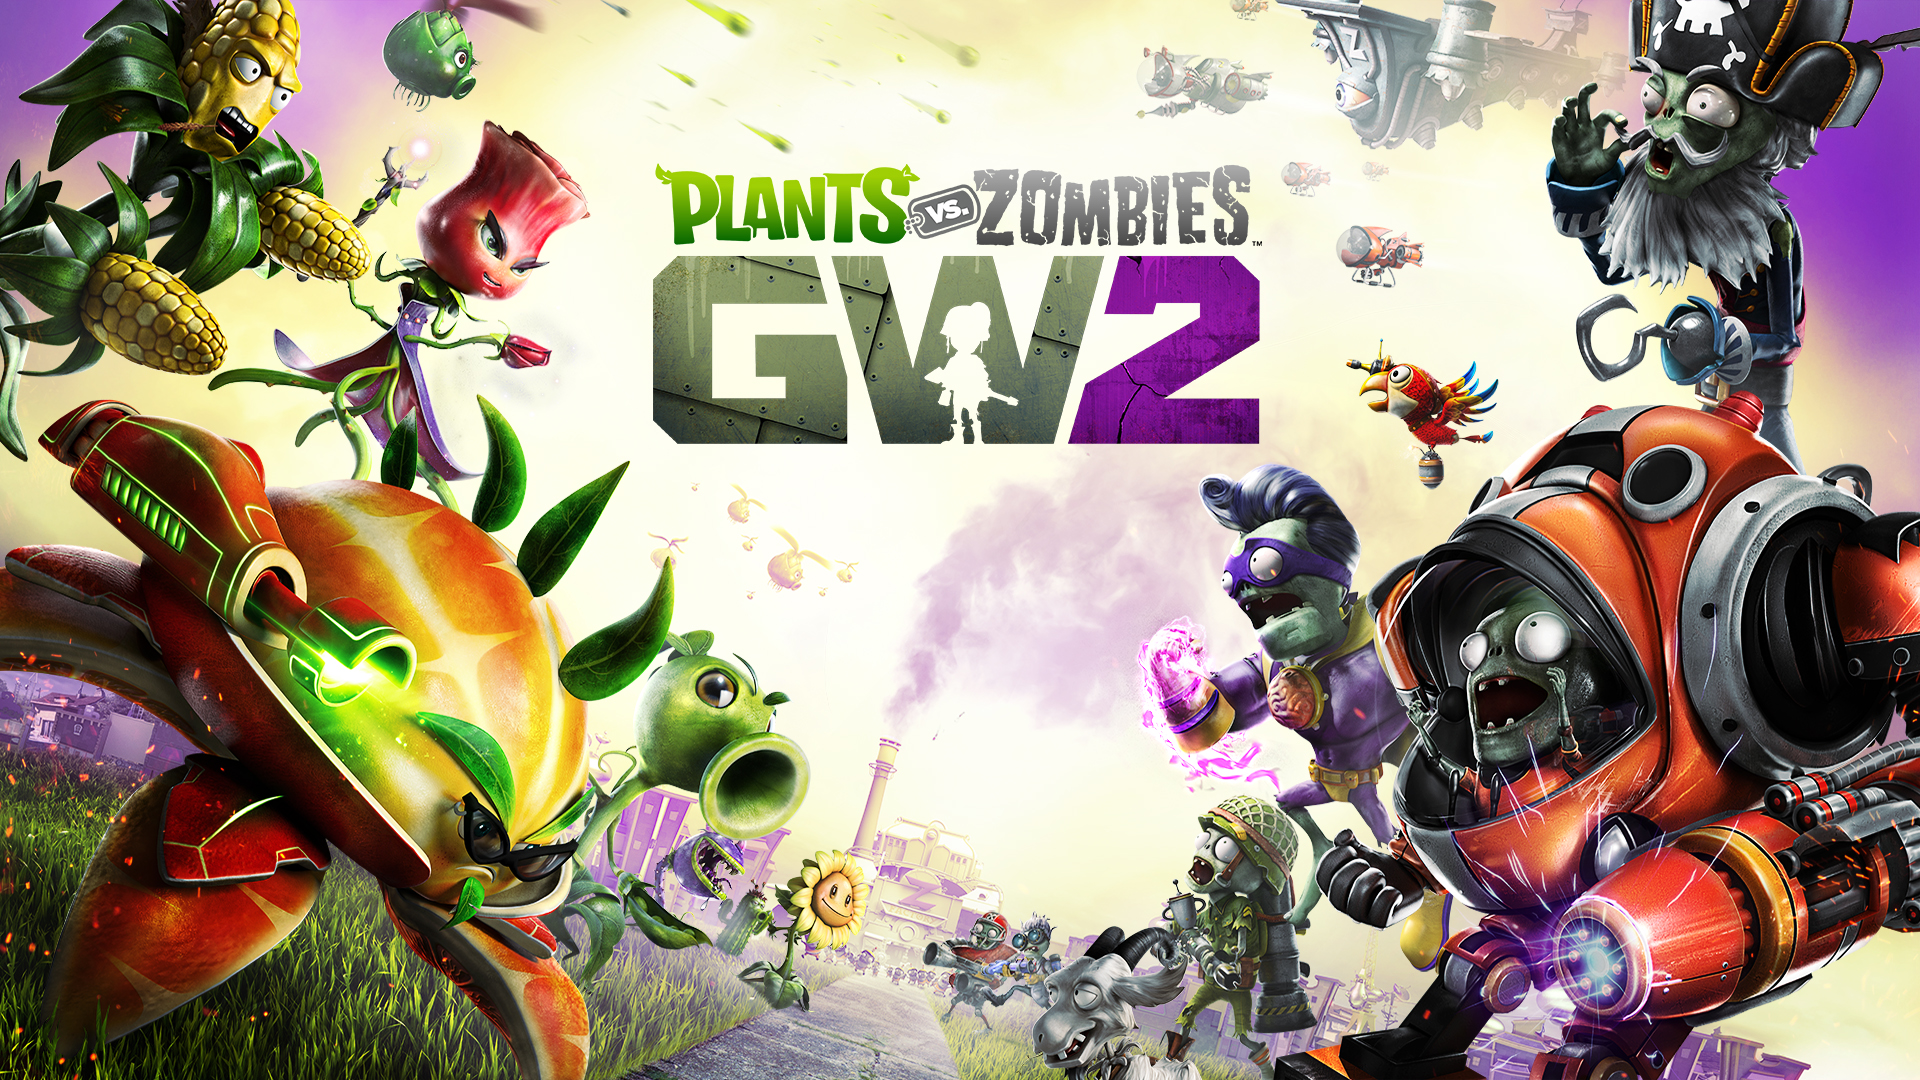 Plants vs zombies garden warfare 2 sitio oficial for Plante vs zombie garden warfare 2